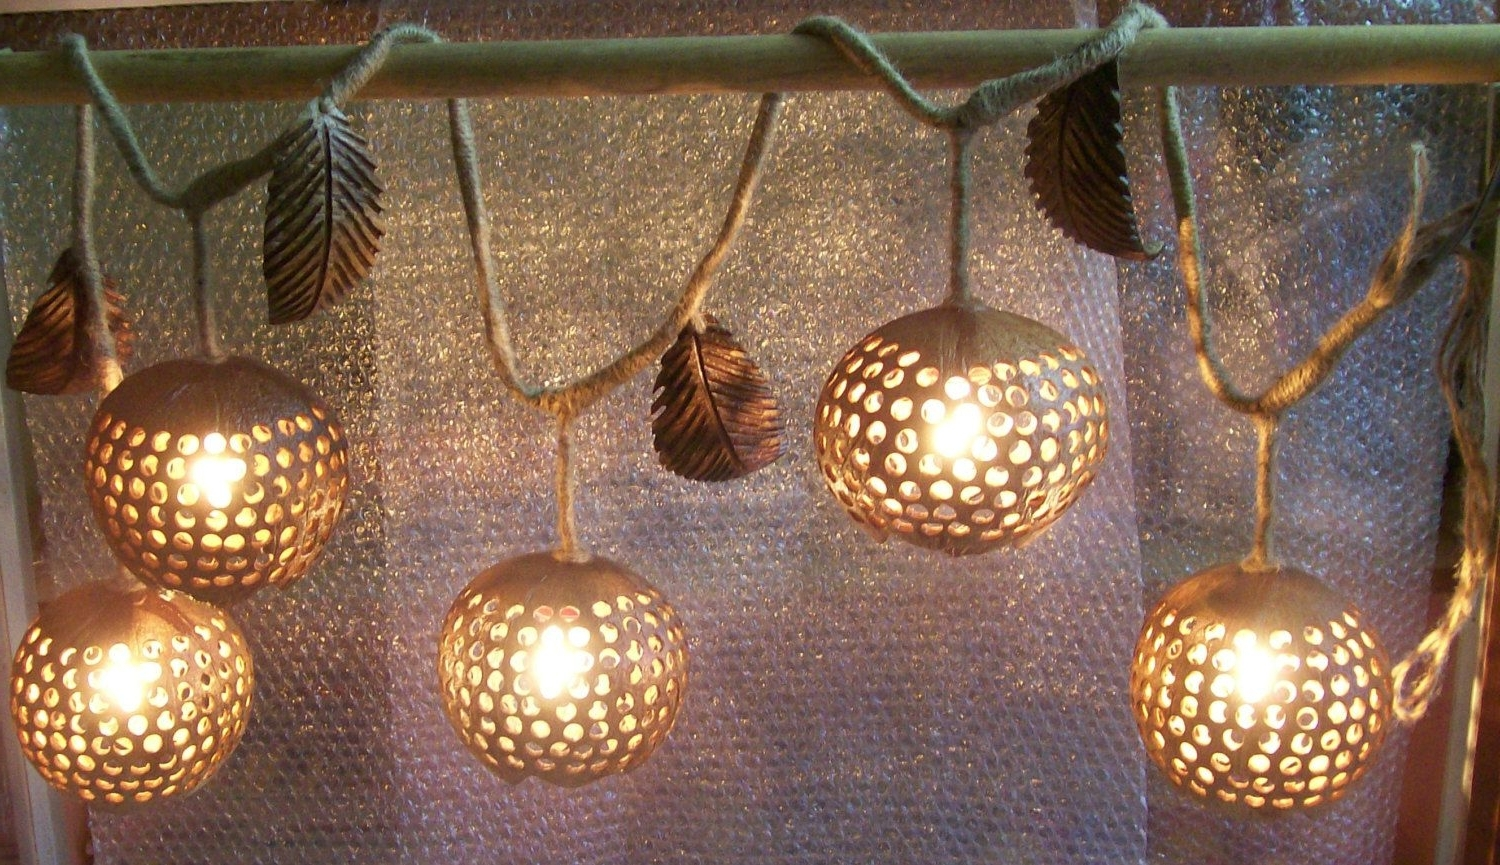 Outdoor Hanging Decorative Lights Within Well Known Wood Hanging Lamp Ivy 5 Ball Coconut Shell Fruit Lanterns Ceiling (View 15 of 20)